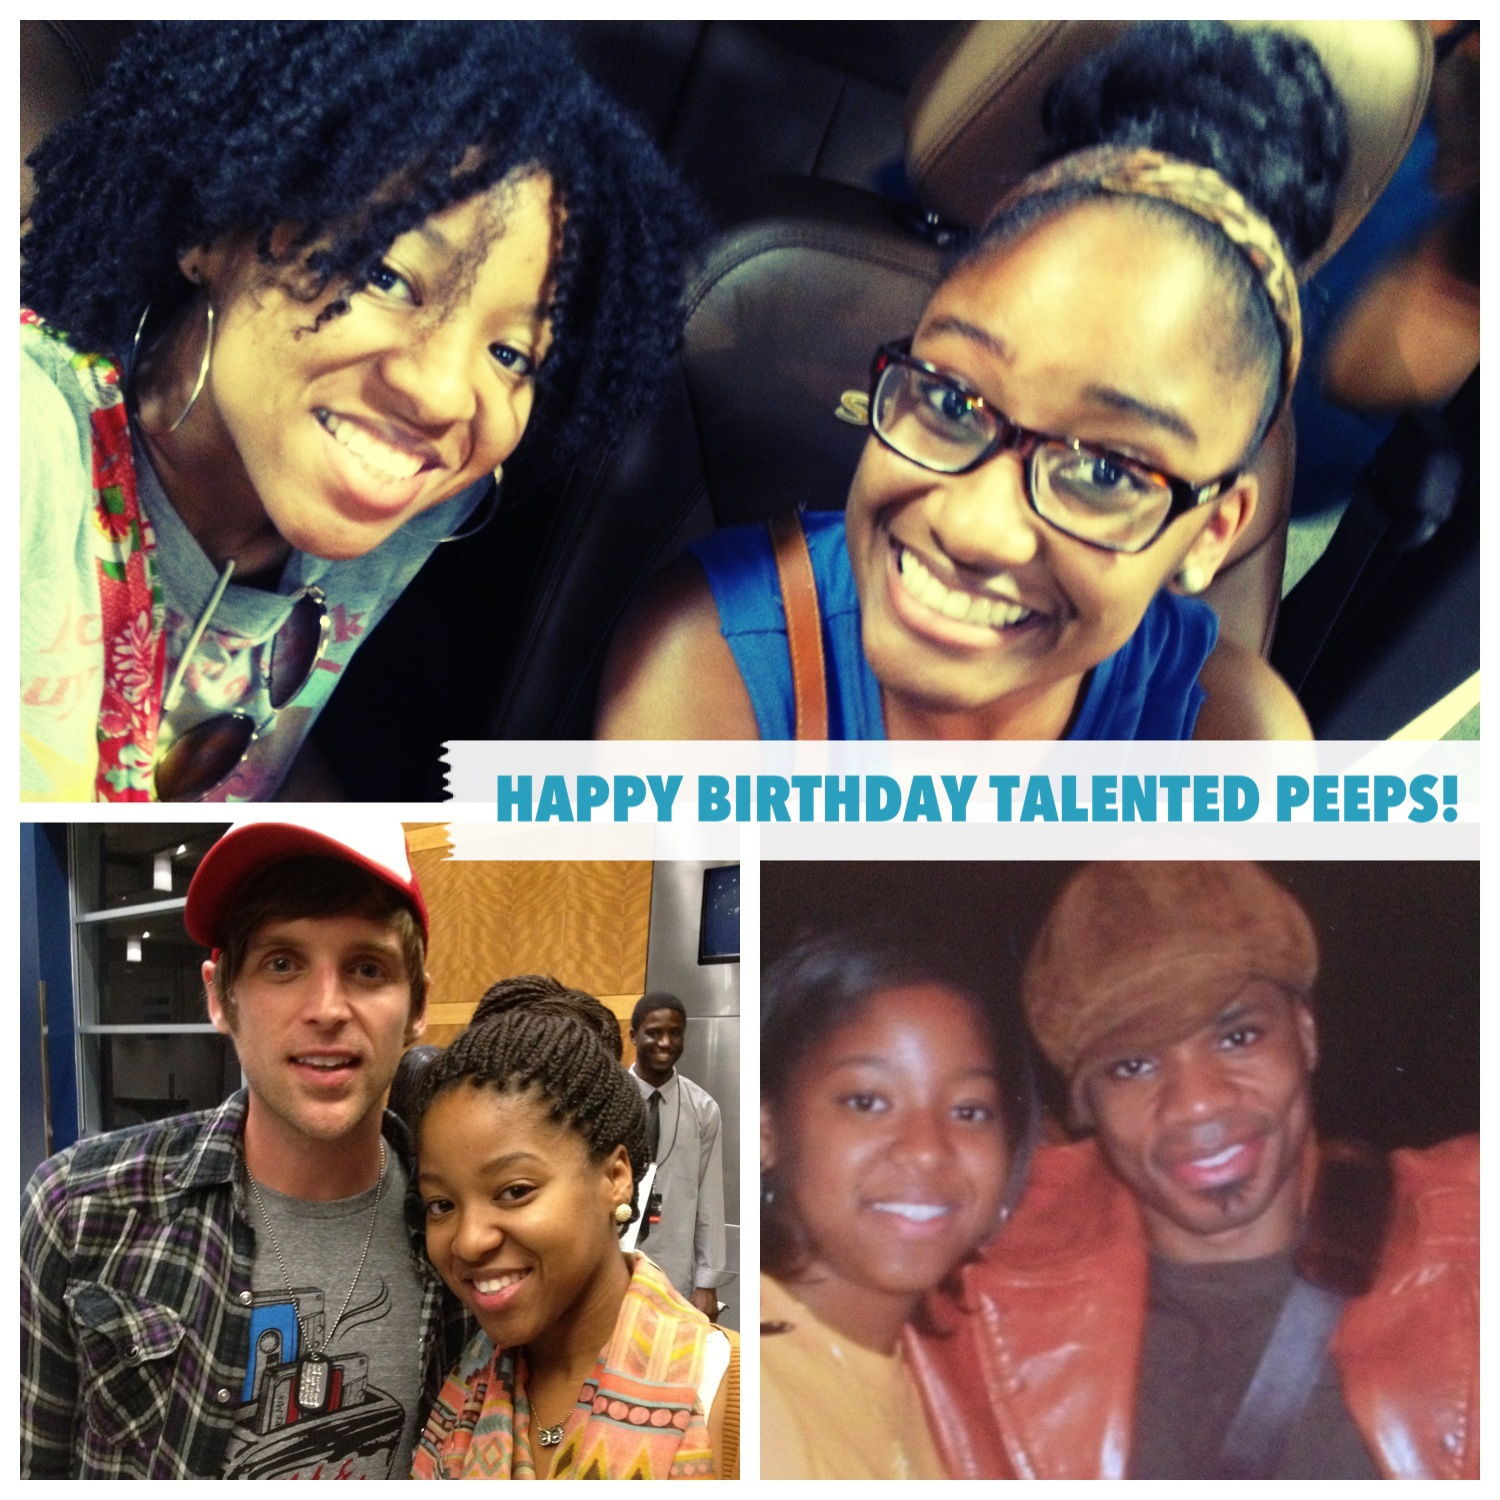 did i mention these cool people get to share a birthday with my awesome sister so to kirk franklin breith today too